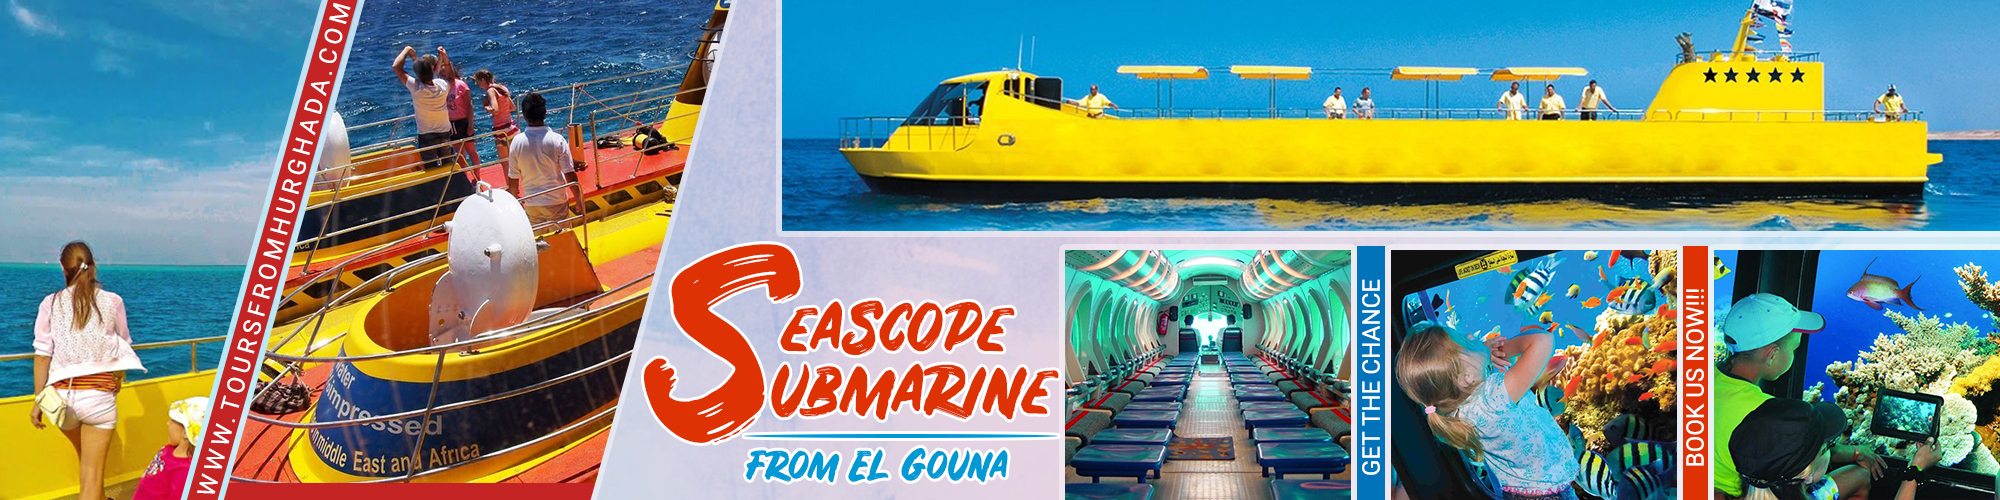 Submarine Seascape Trips From El Gouna - Tours from Hurghada